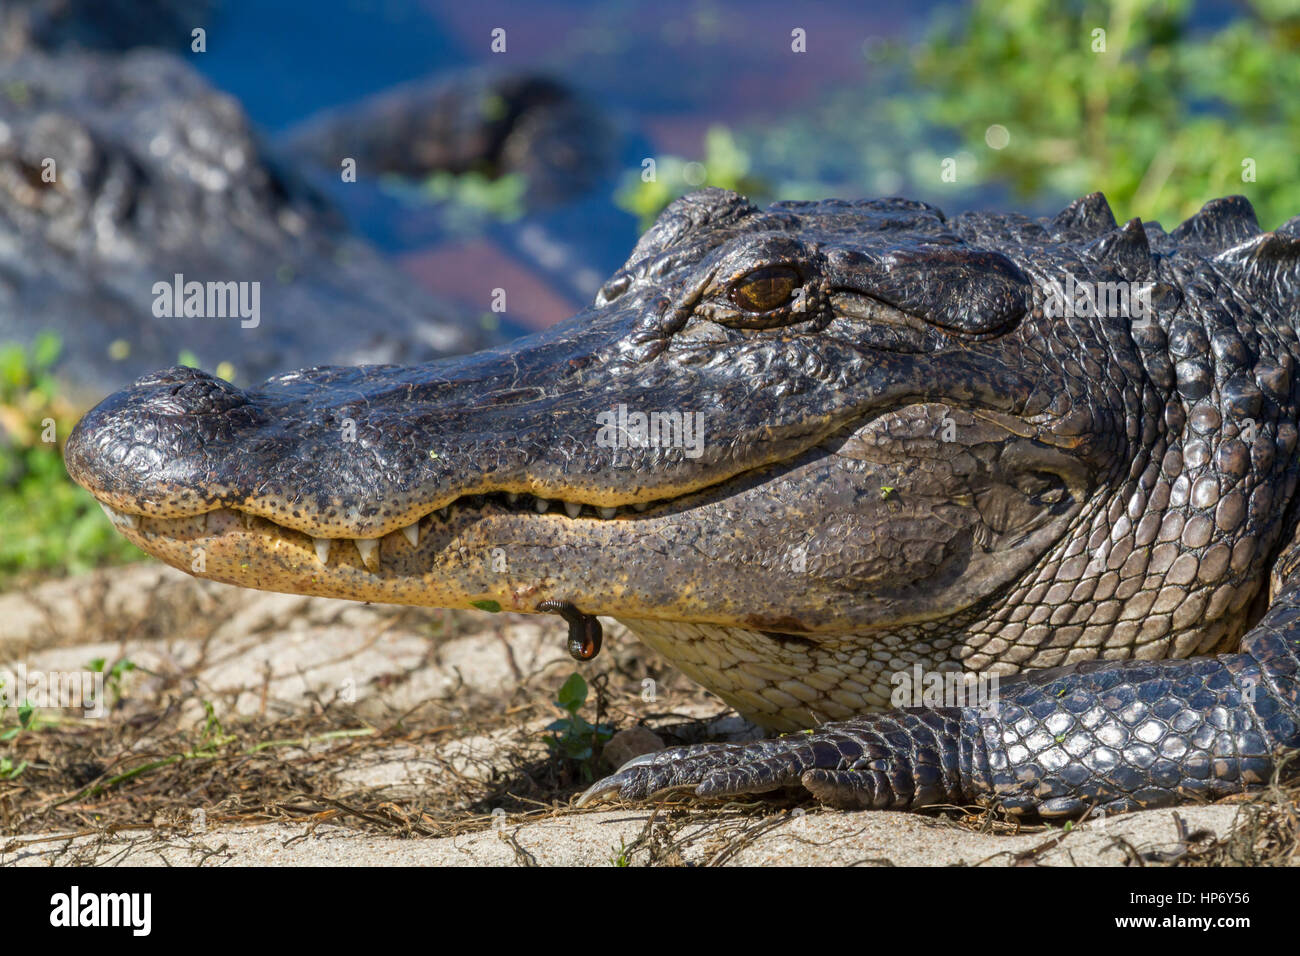 American alligator close up - Stock Image